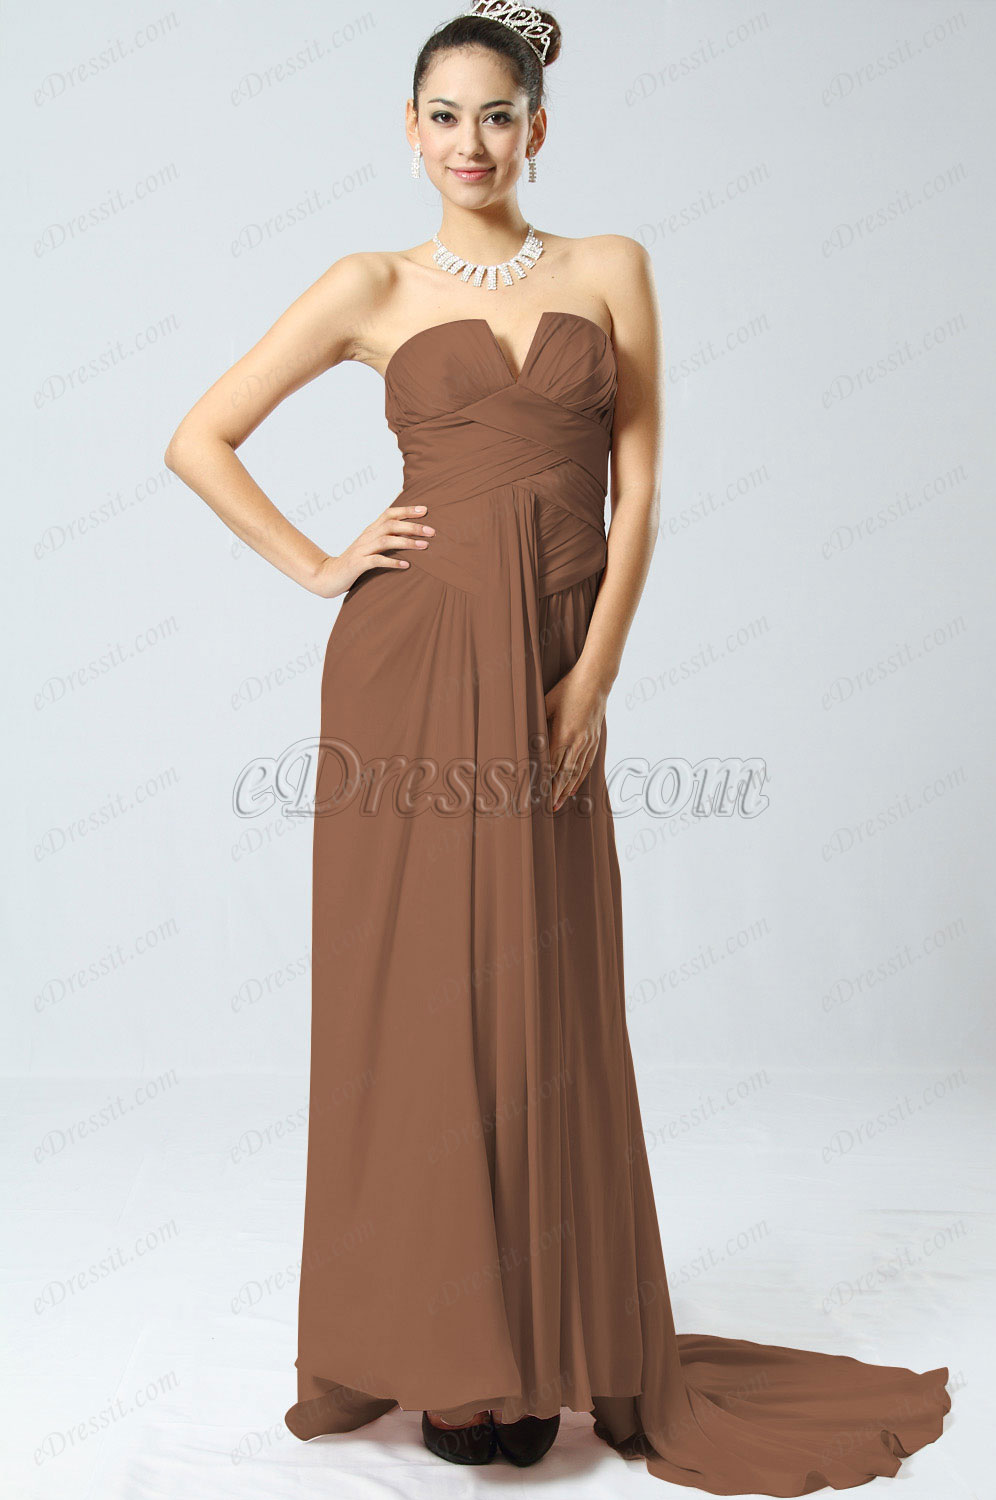 Clearance Sale! eDressit Marron Evening Dress--Size UK12 (00094201b)